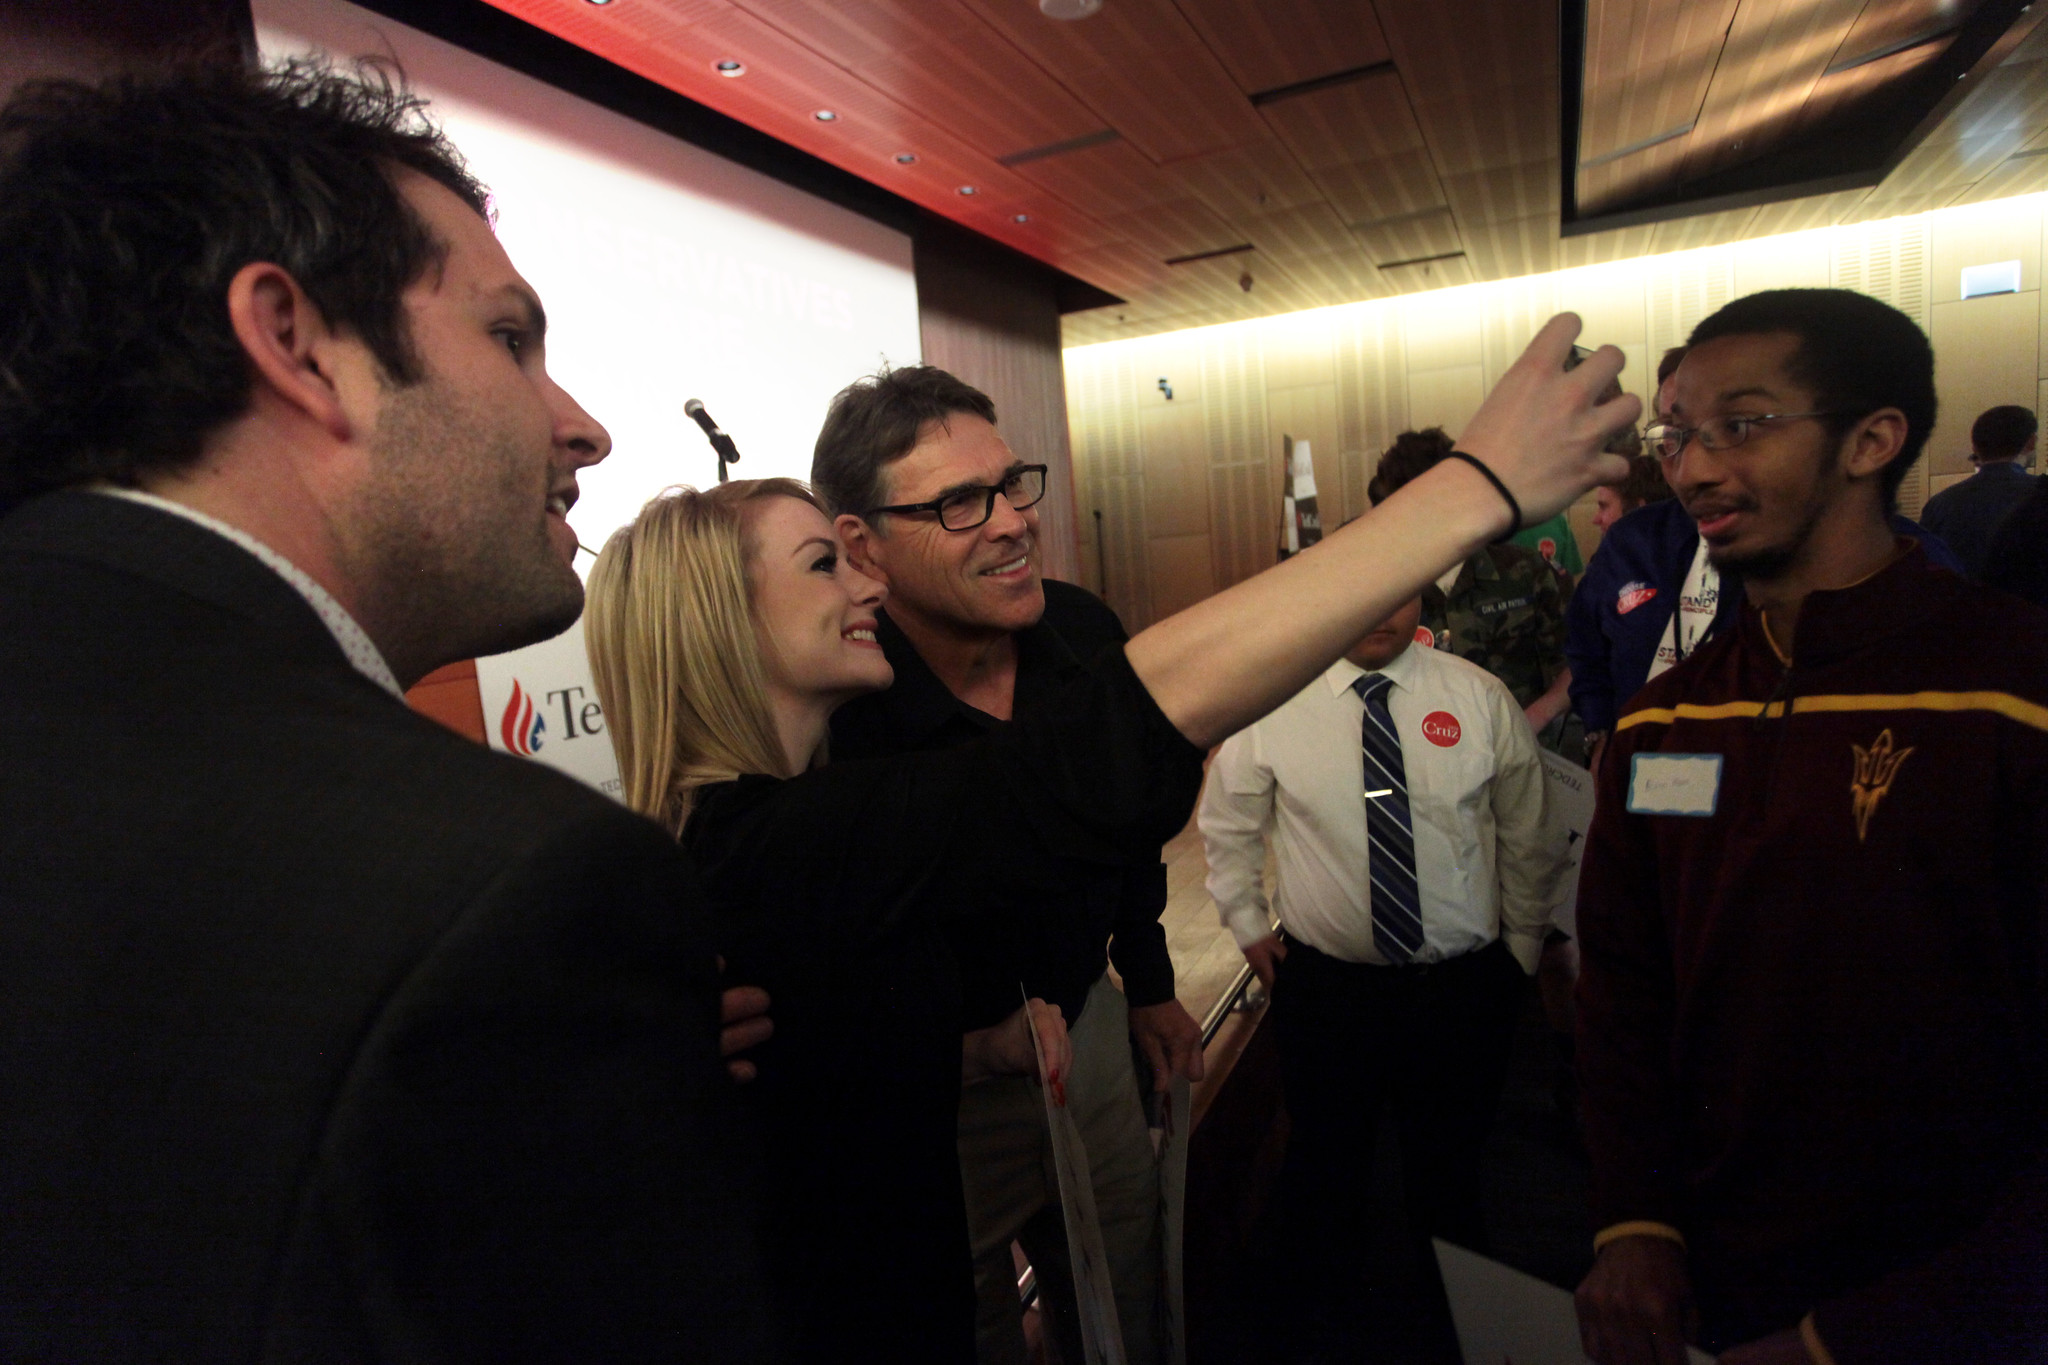 Rick Perry with supporters